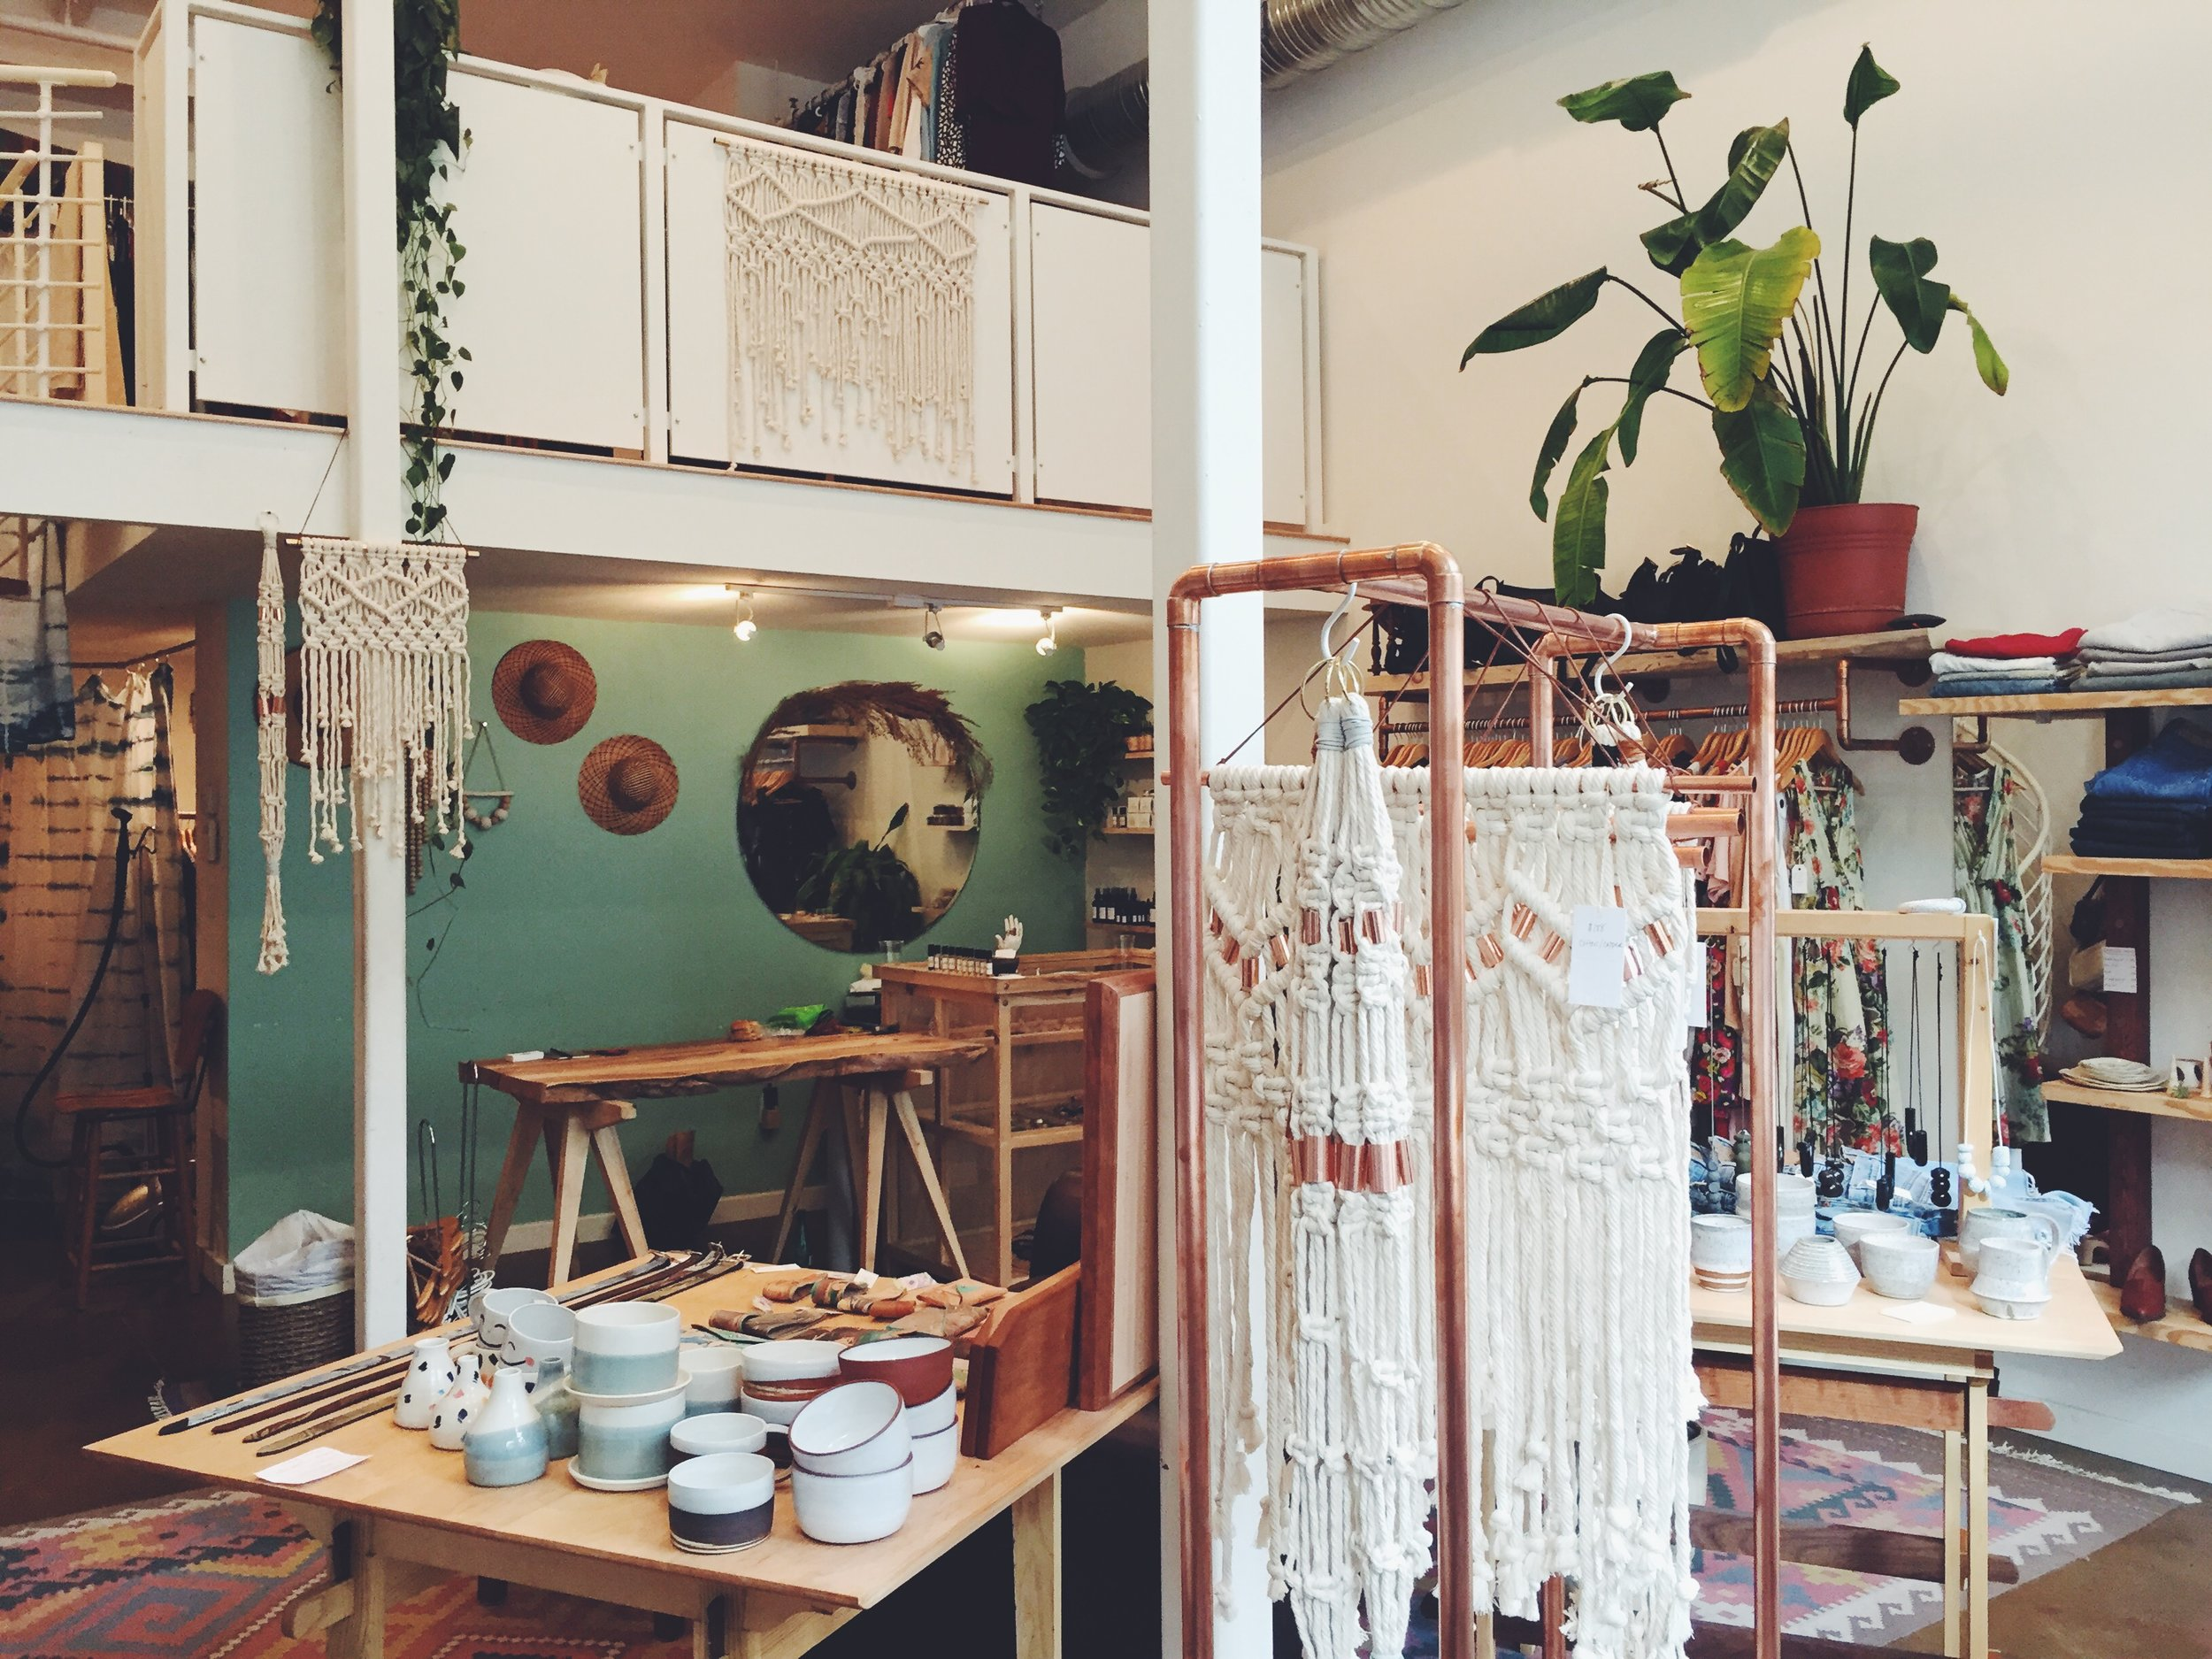 WALL HANGINGS AND PLANTERS AT ROSEWOOD CLOTHING CO, RICHMOND, VA